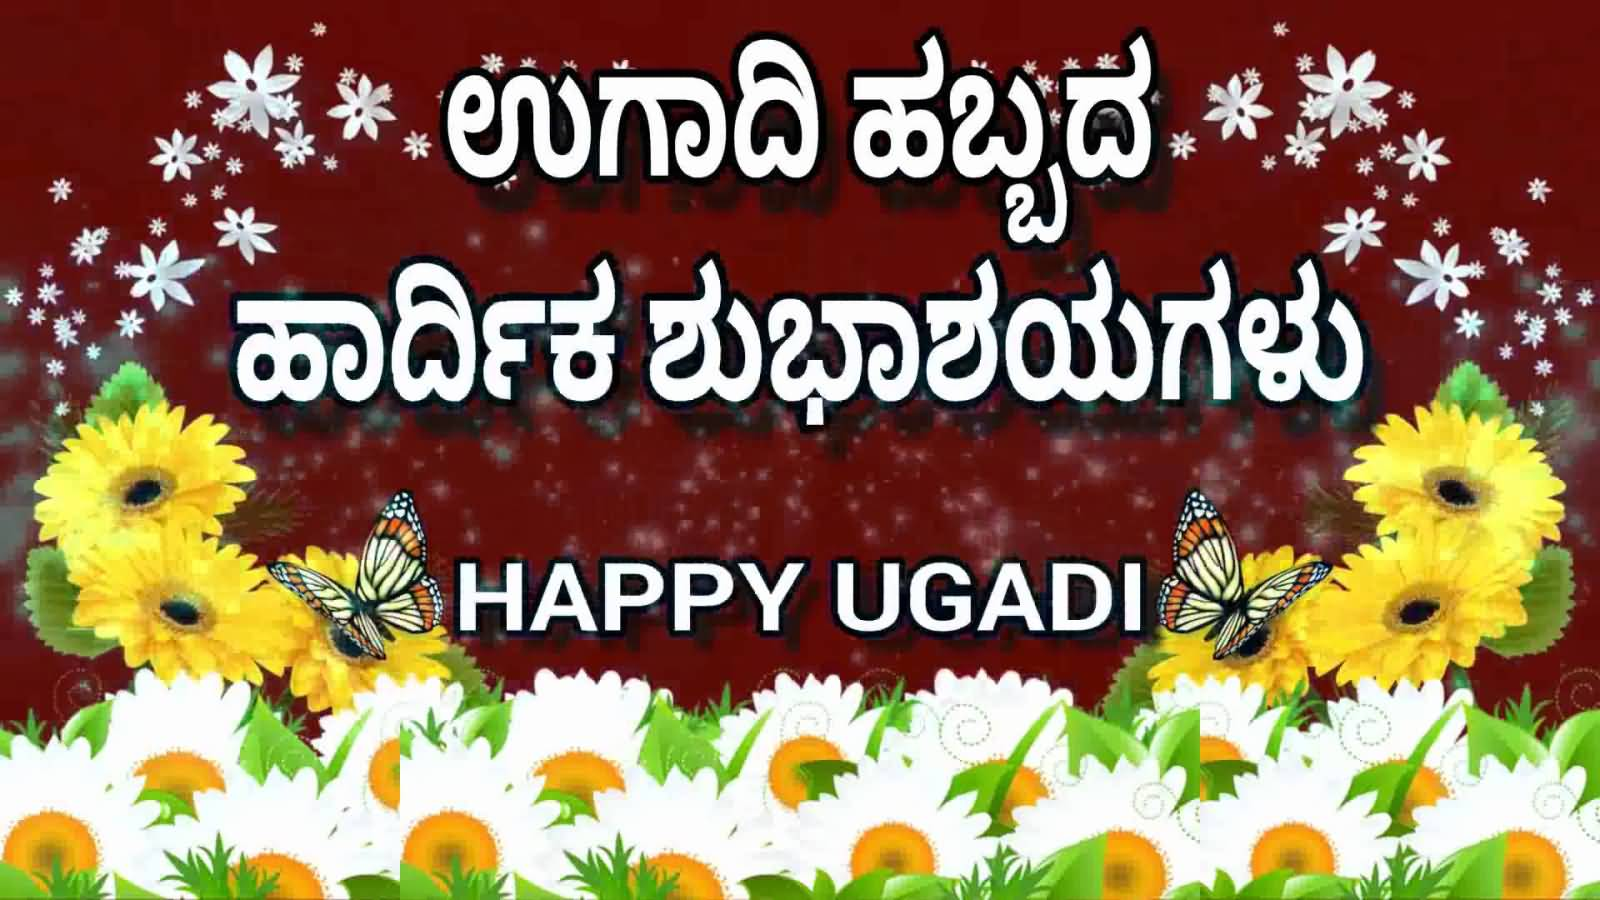 50 Best Happy Ugadi 2019 Greeting Pictures And Photos